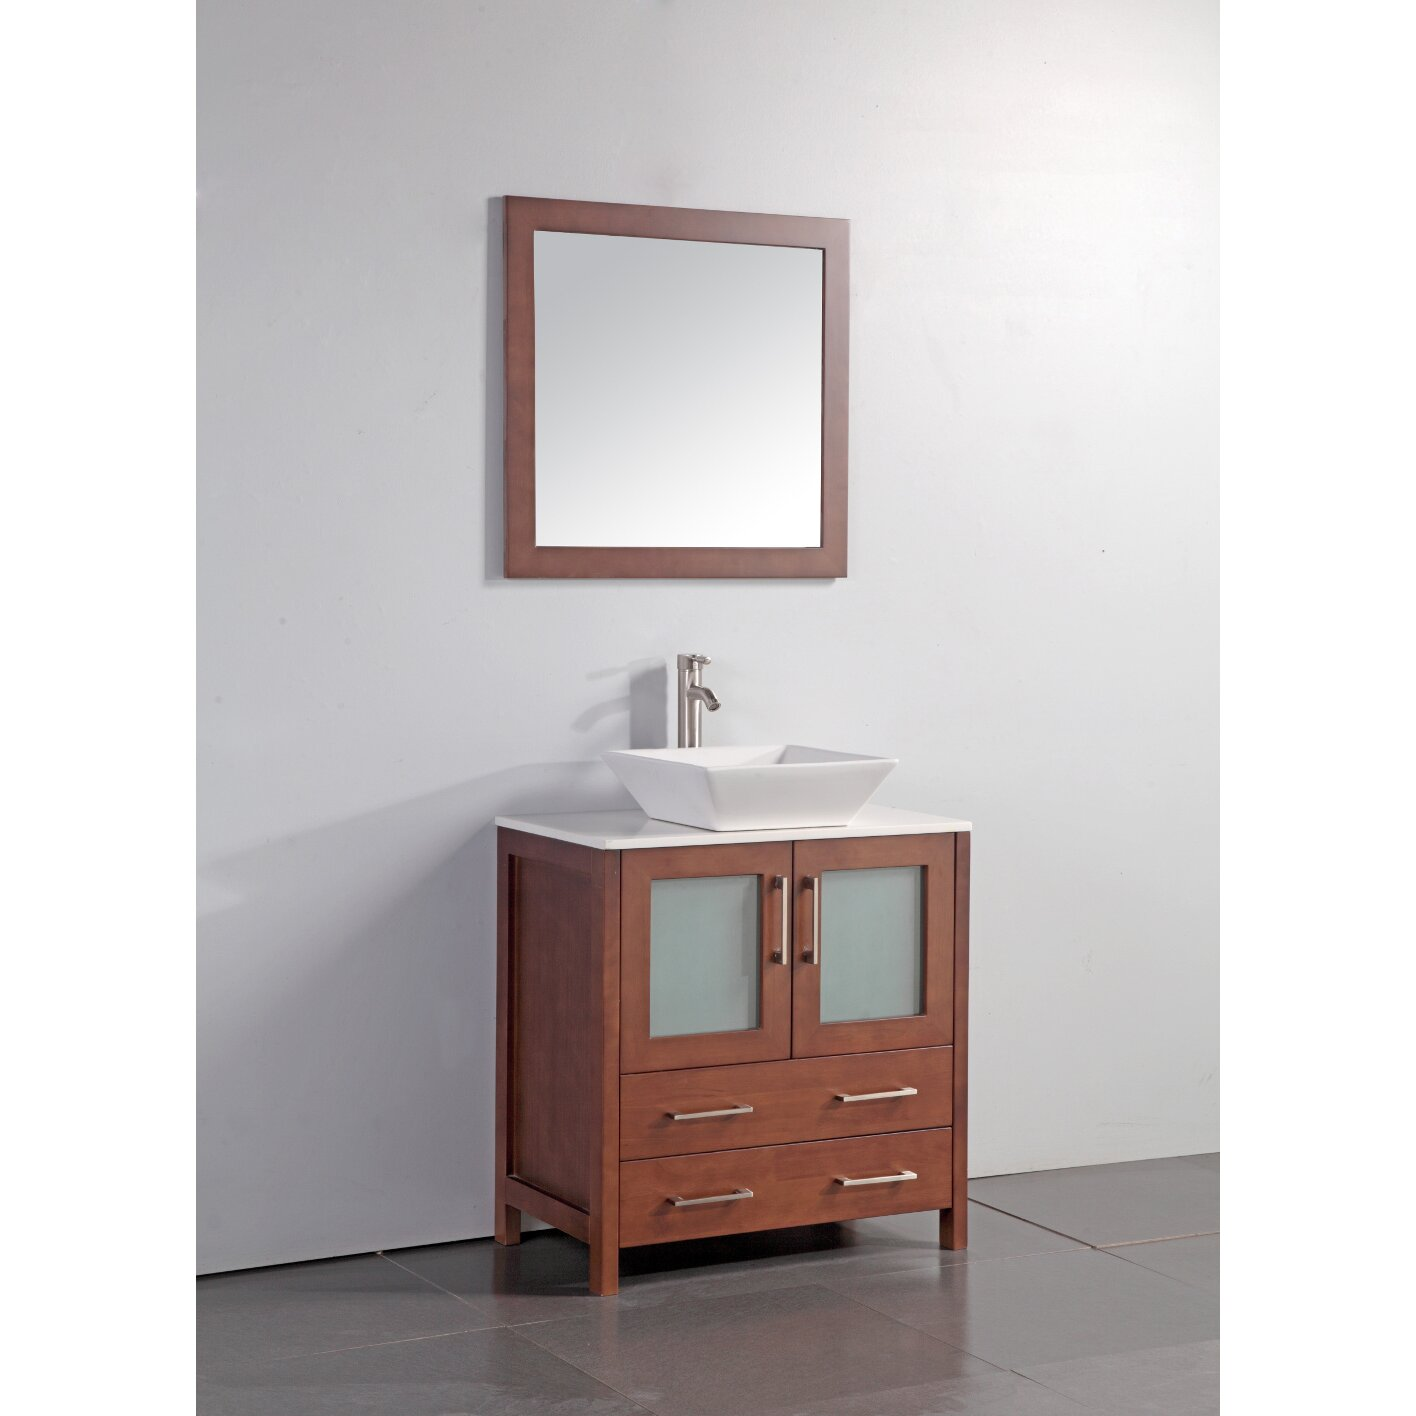 Cool Light Grey Tile Bathroom Floor Huge Bathroom Drawer Base Cabinets Round Bath Vanities New Jersey Glass For Bathtub Shower Young Install A Bathroom Fan Without Attic Access BluePremier Walk In Bath Reviews All Wood Vanity For Bathroom